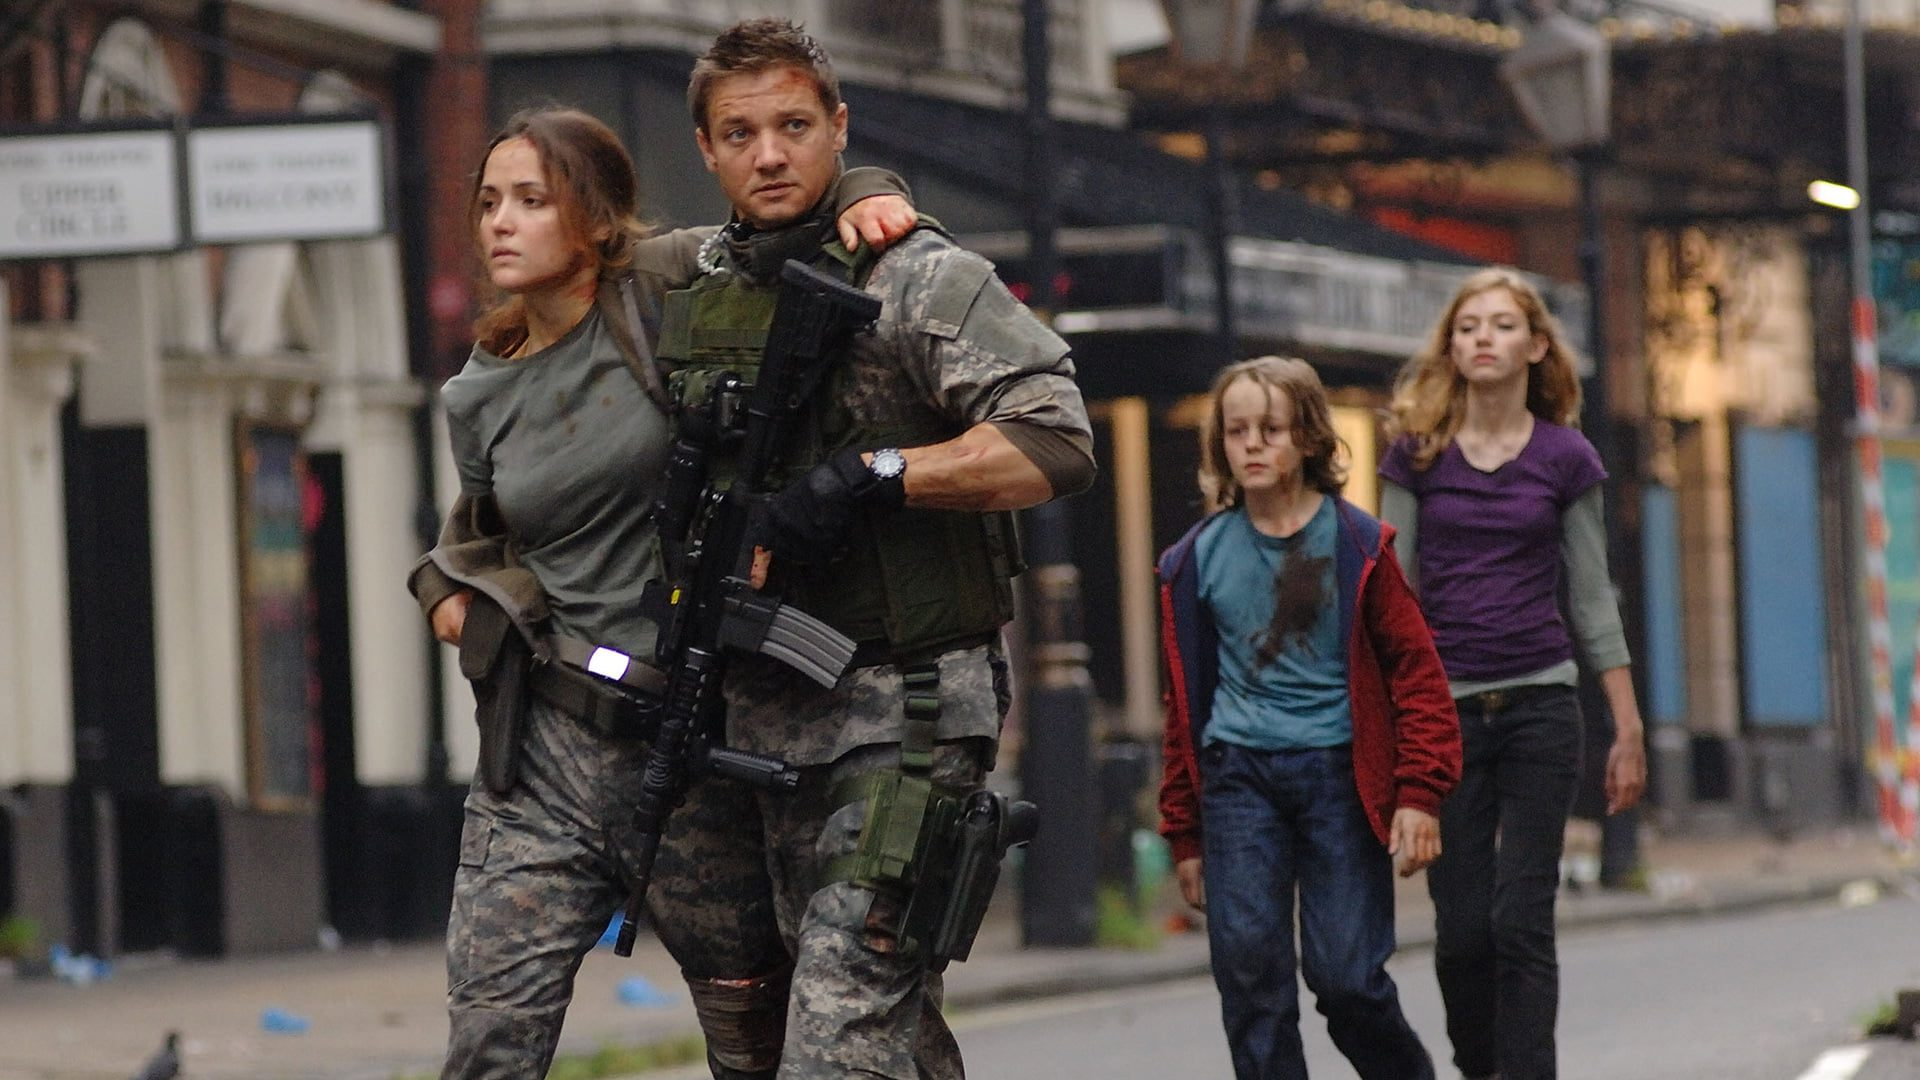 28 Weeks Later Ending Explained